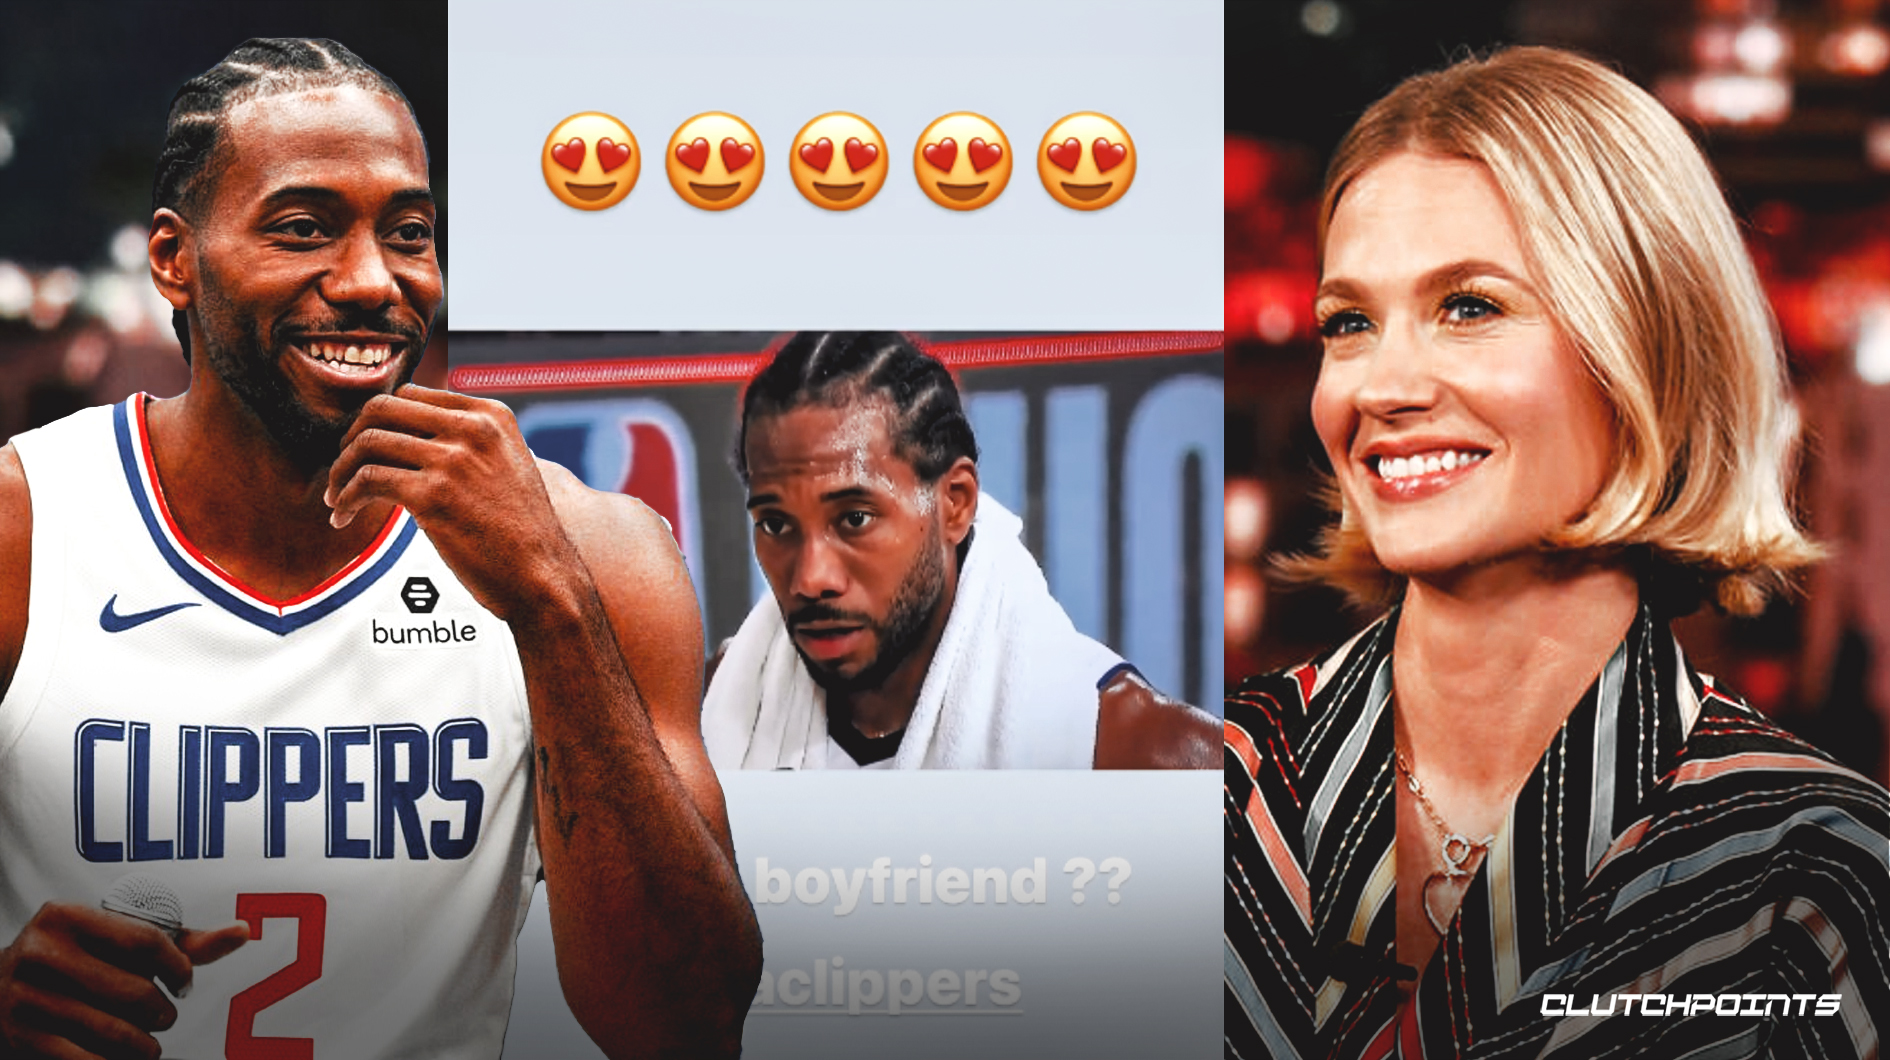 Kawhi Leonard, Clipperds, January Jones